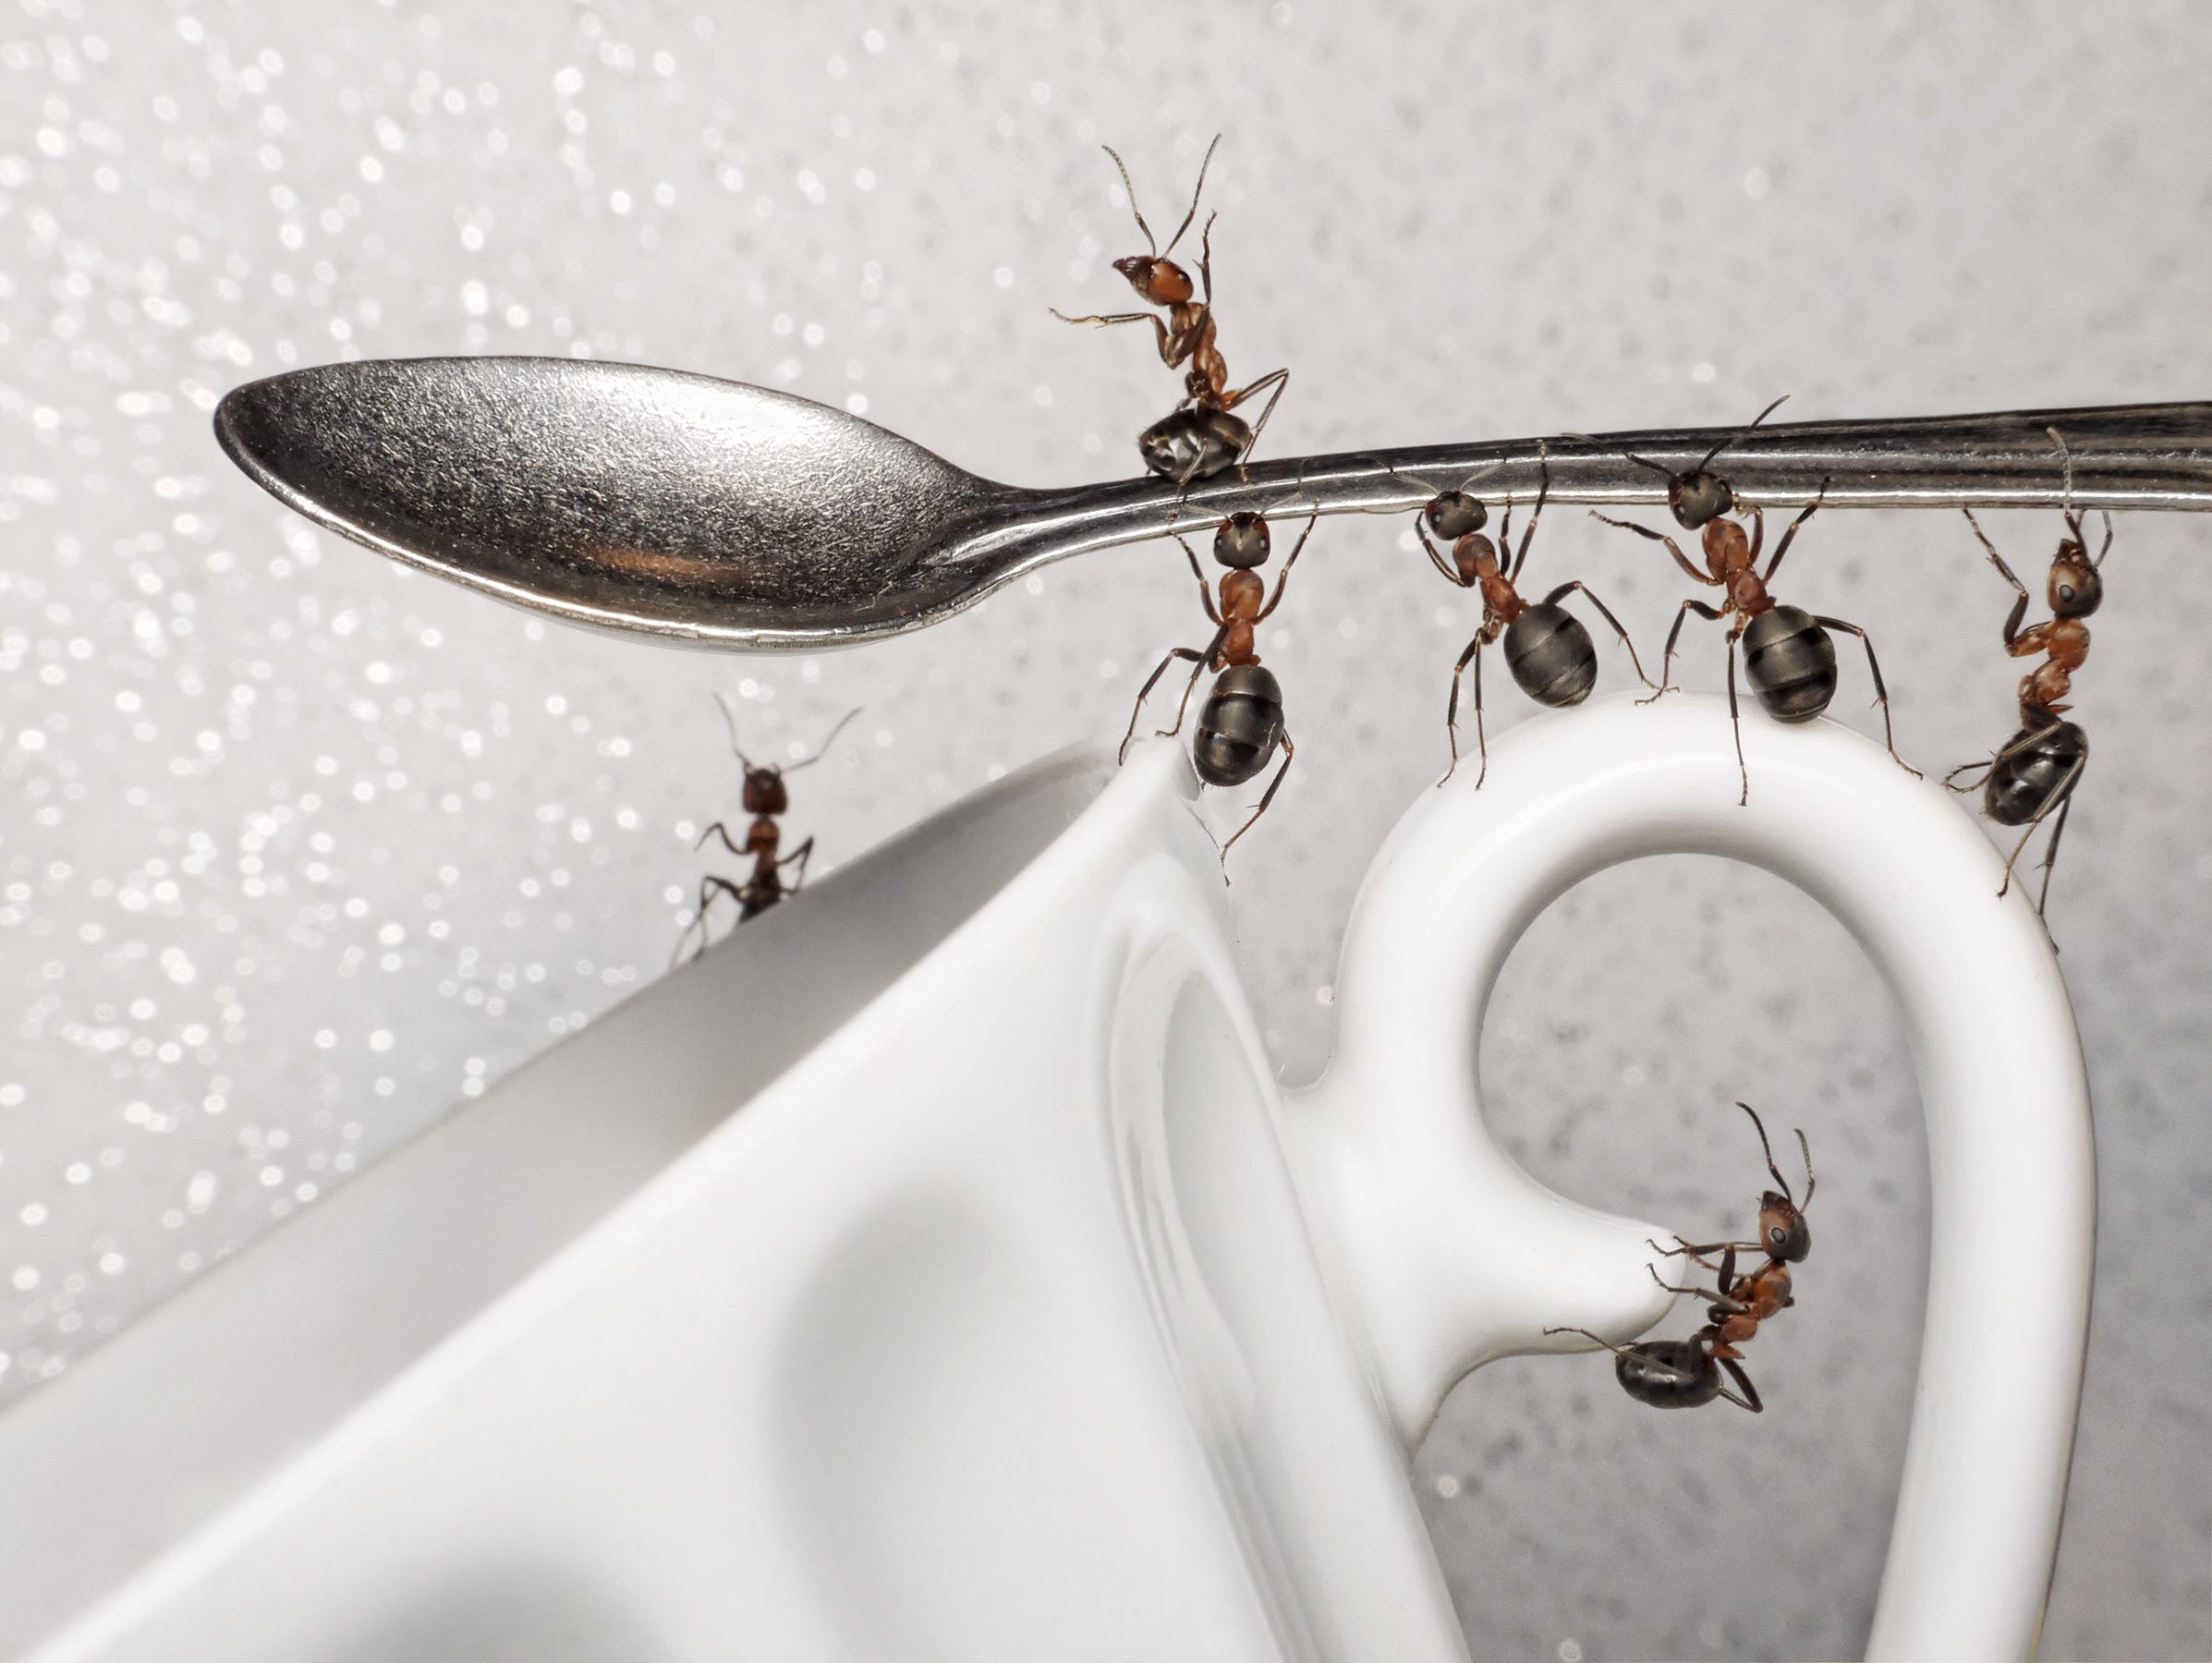 How To Get Rid of Ants In House? 4 Easy Ways To Kill Ants